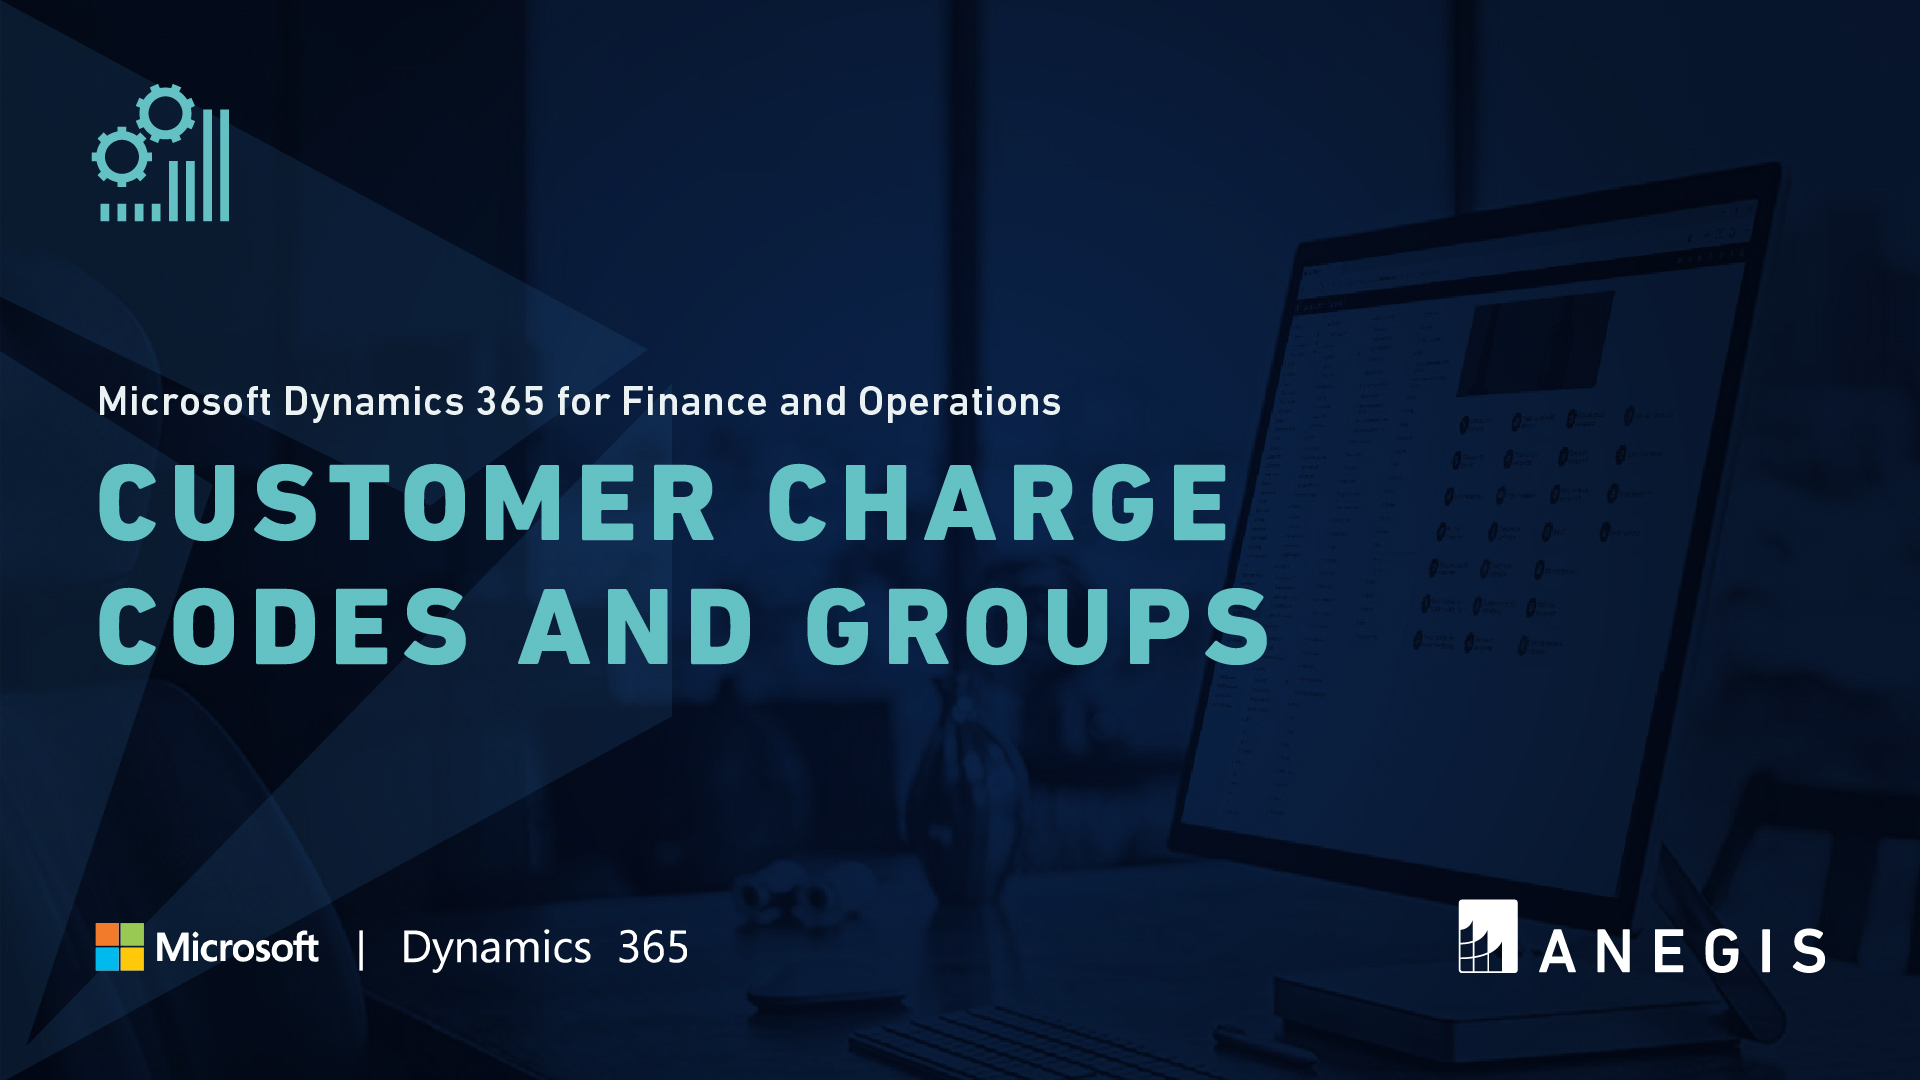 D365 F&O: Customer Charge Codes and Groups